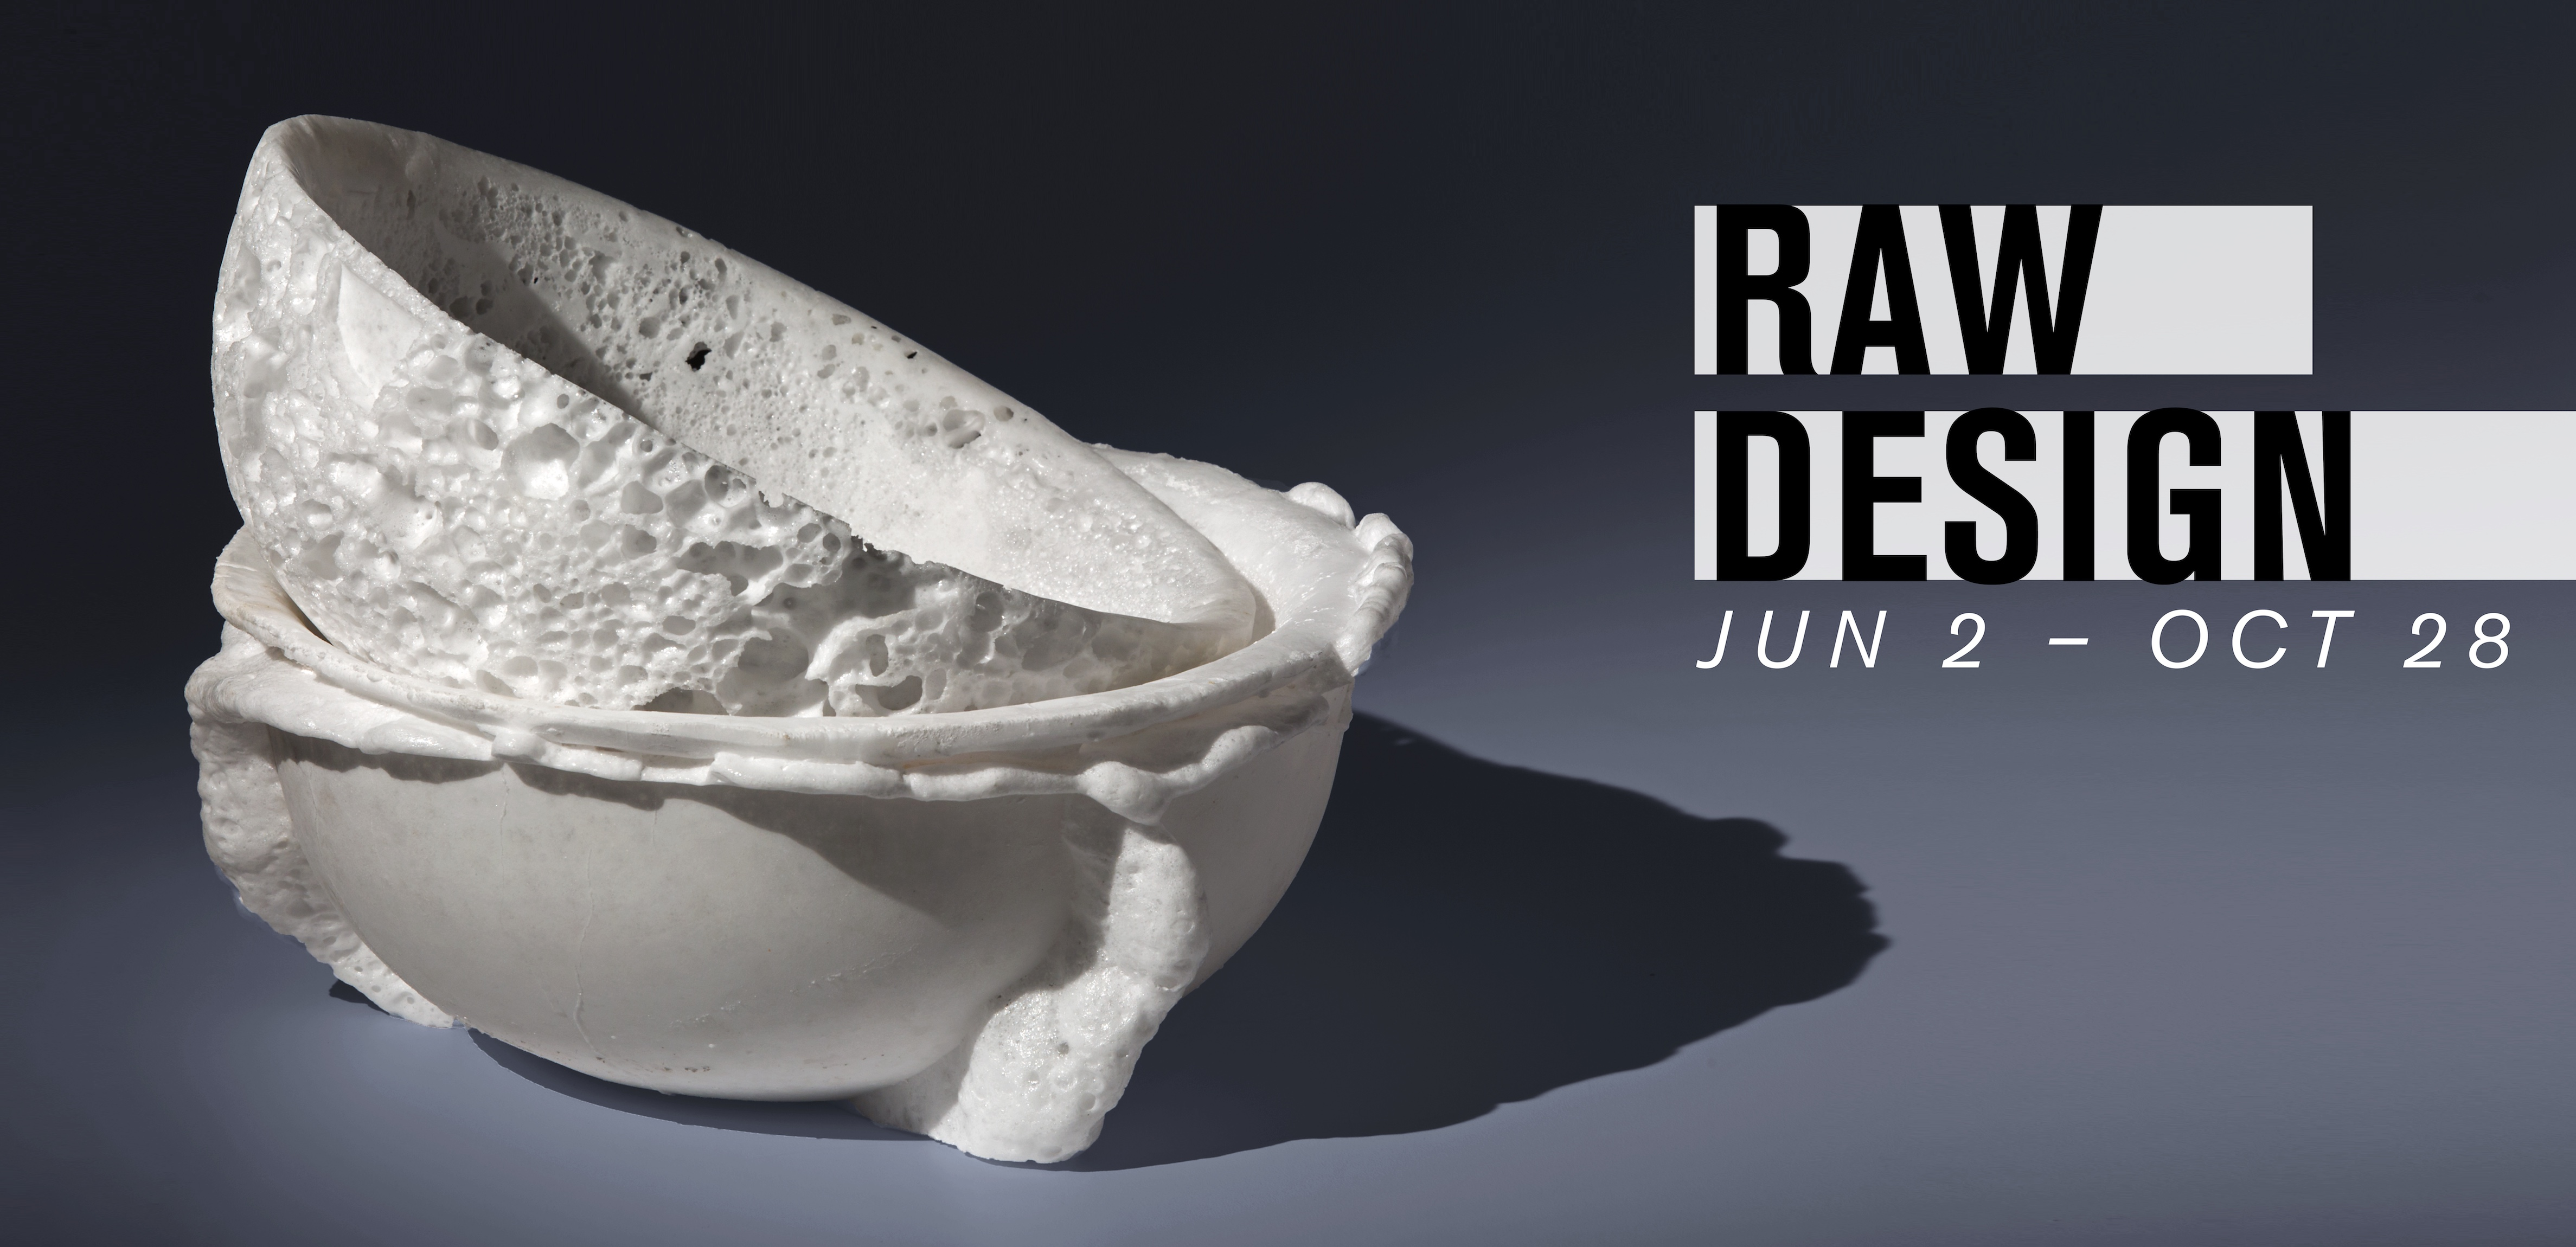 Raw Design Exhibition at Museum of Craft and Design